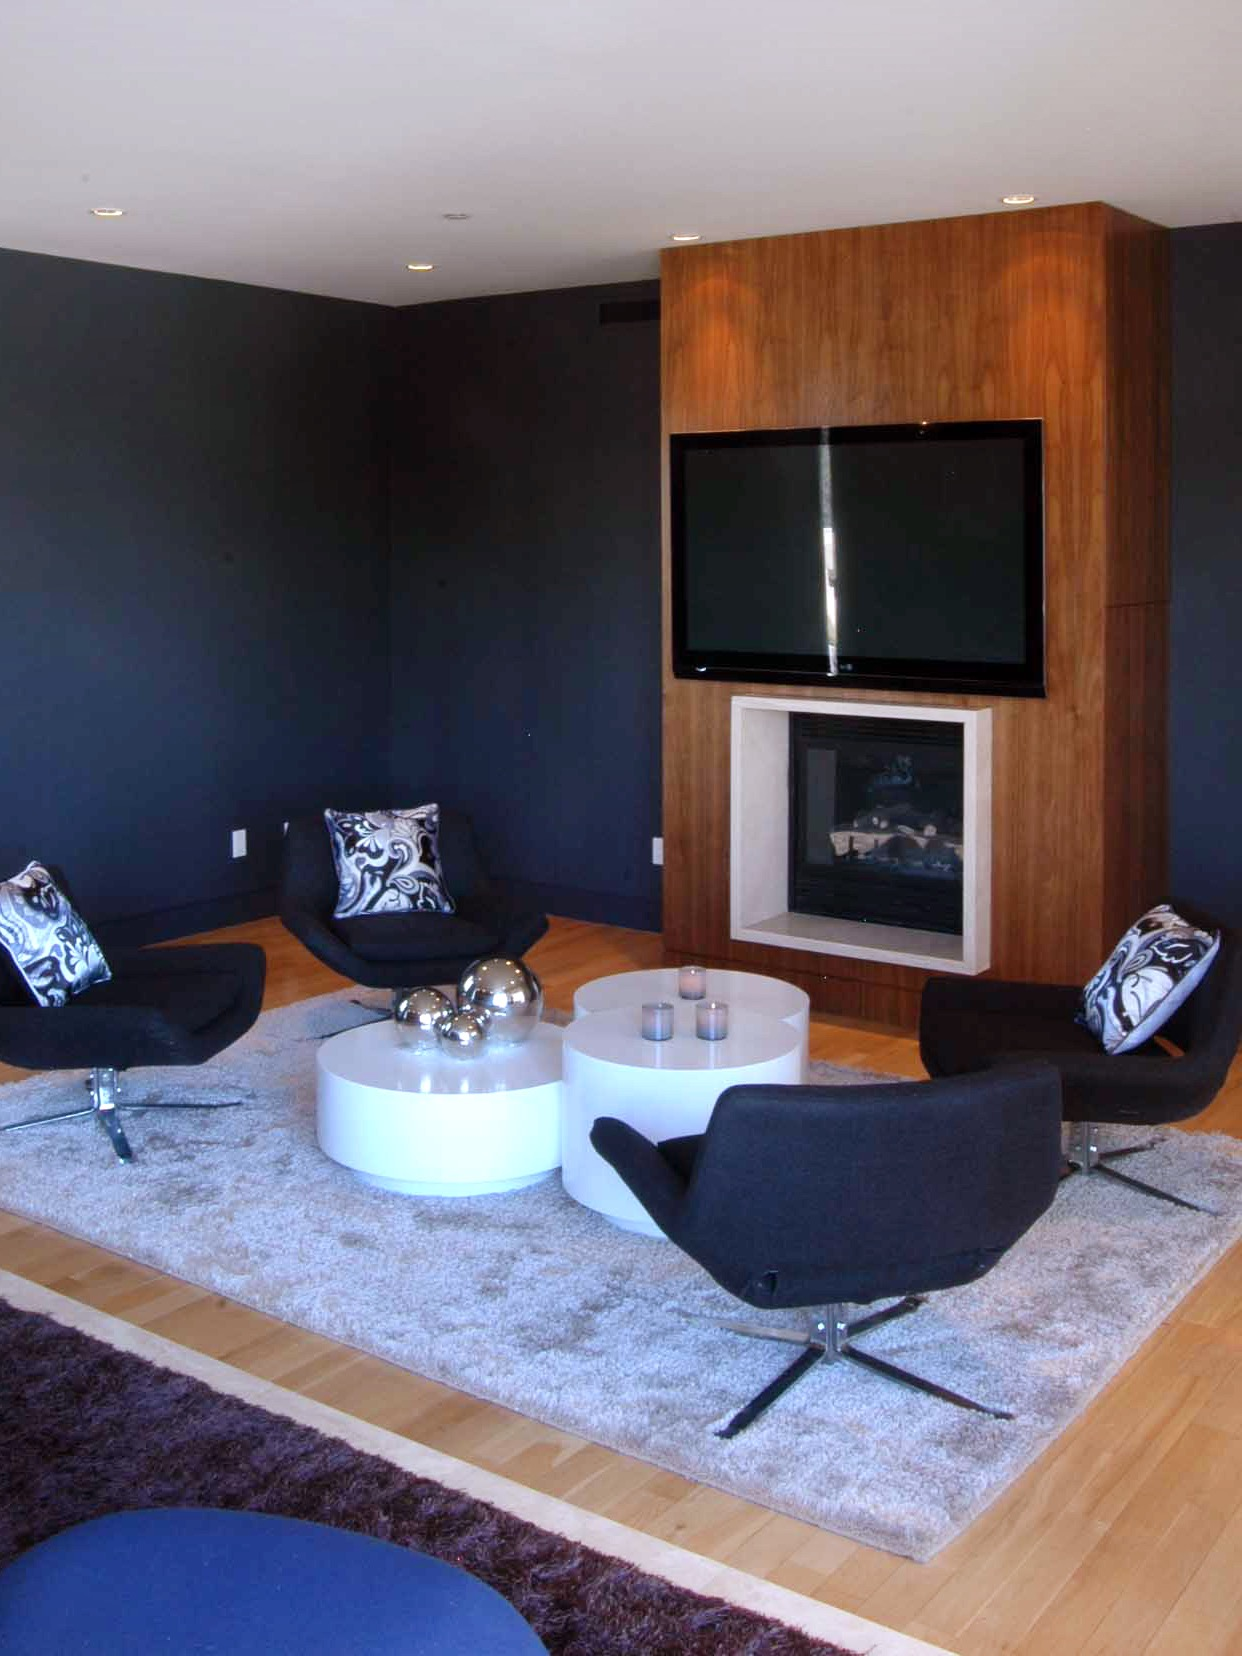 Contemporary Living Room With Futuristic Chairs And Modern Fireplace (View 4 of 31)